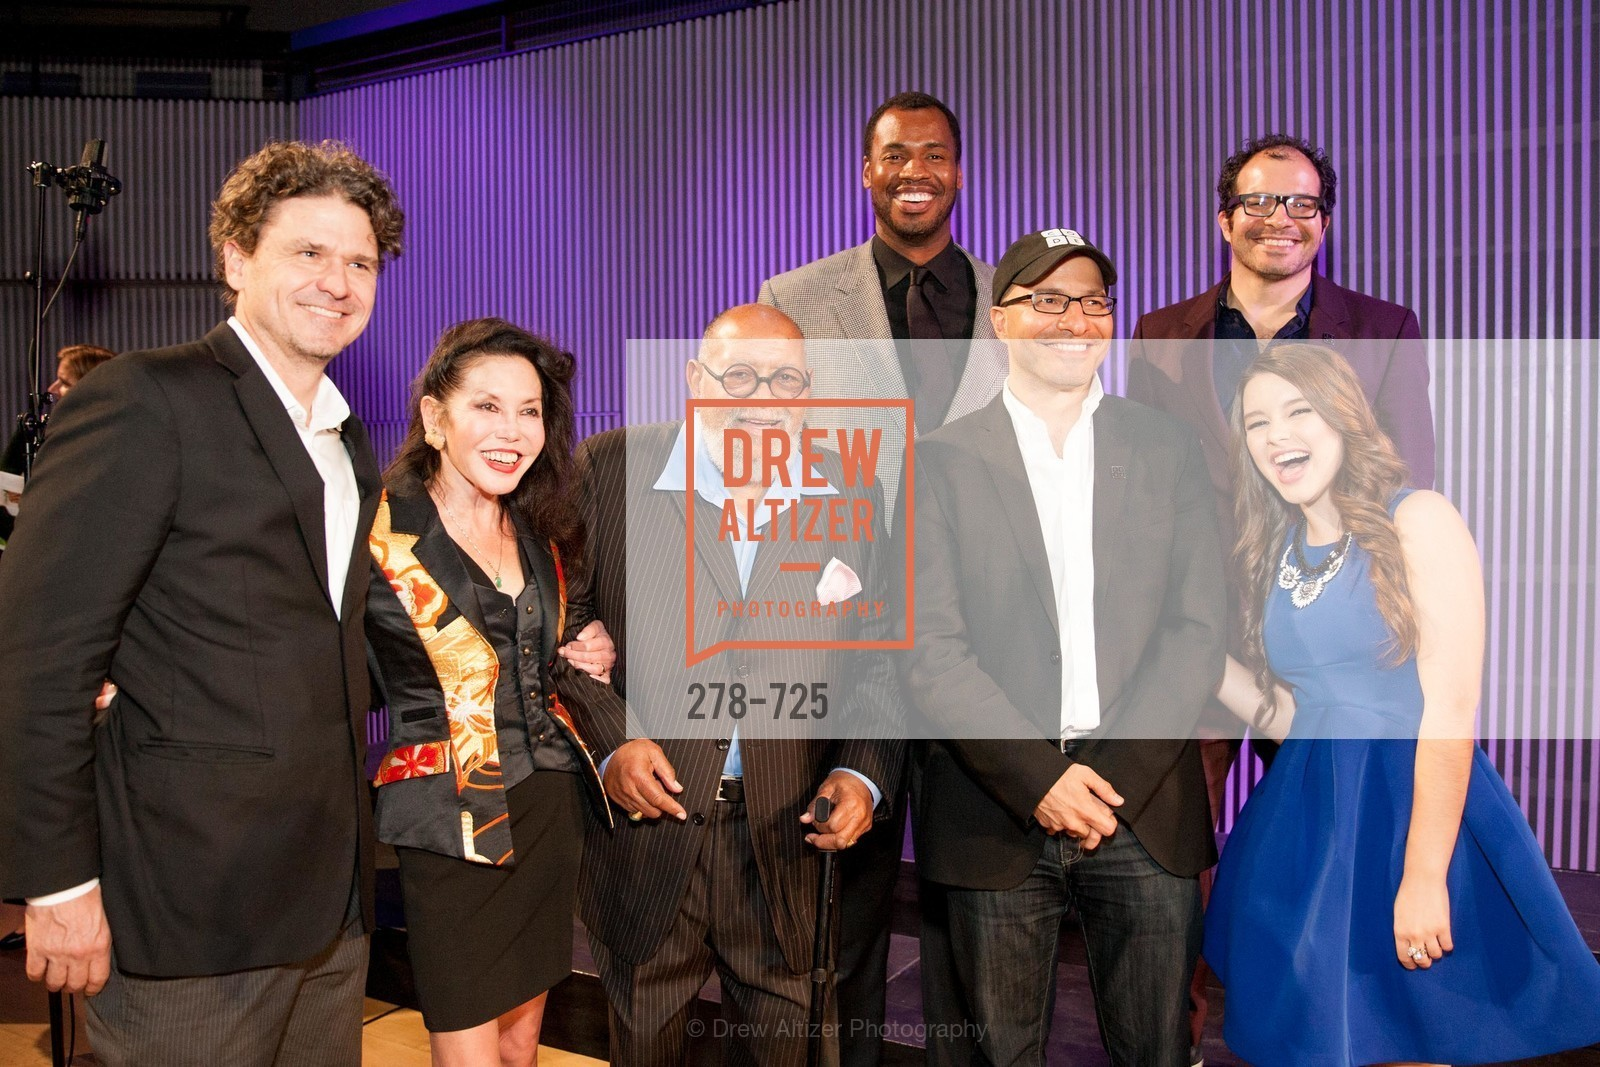 Dave Eggers, Janice Mirikitani, Reverend Cecil Williams, Jason Collins, Hadi Partovi, Ali Partovi, COMMON SENSE Media Awards 2015, US, May 14th, 2015,Drew Altizer, Drew Altizer Photography, full-service event agency, private events, San Francisco photographer, photographer California